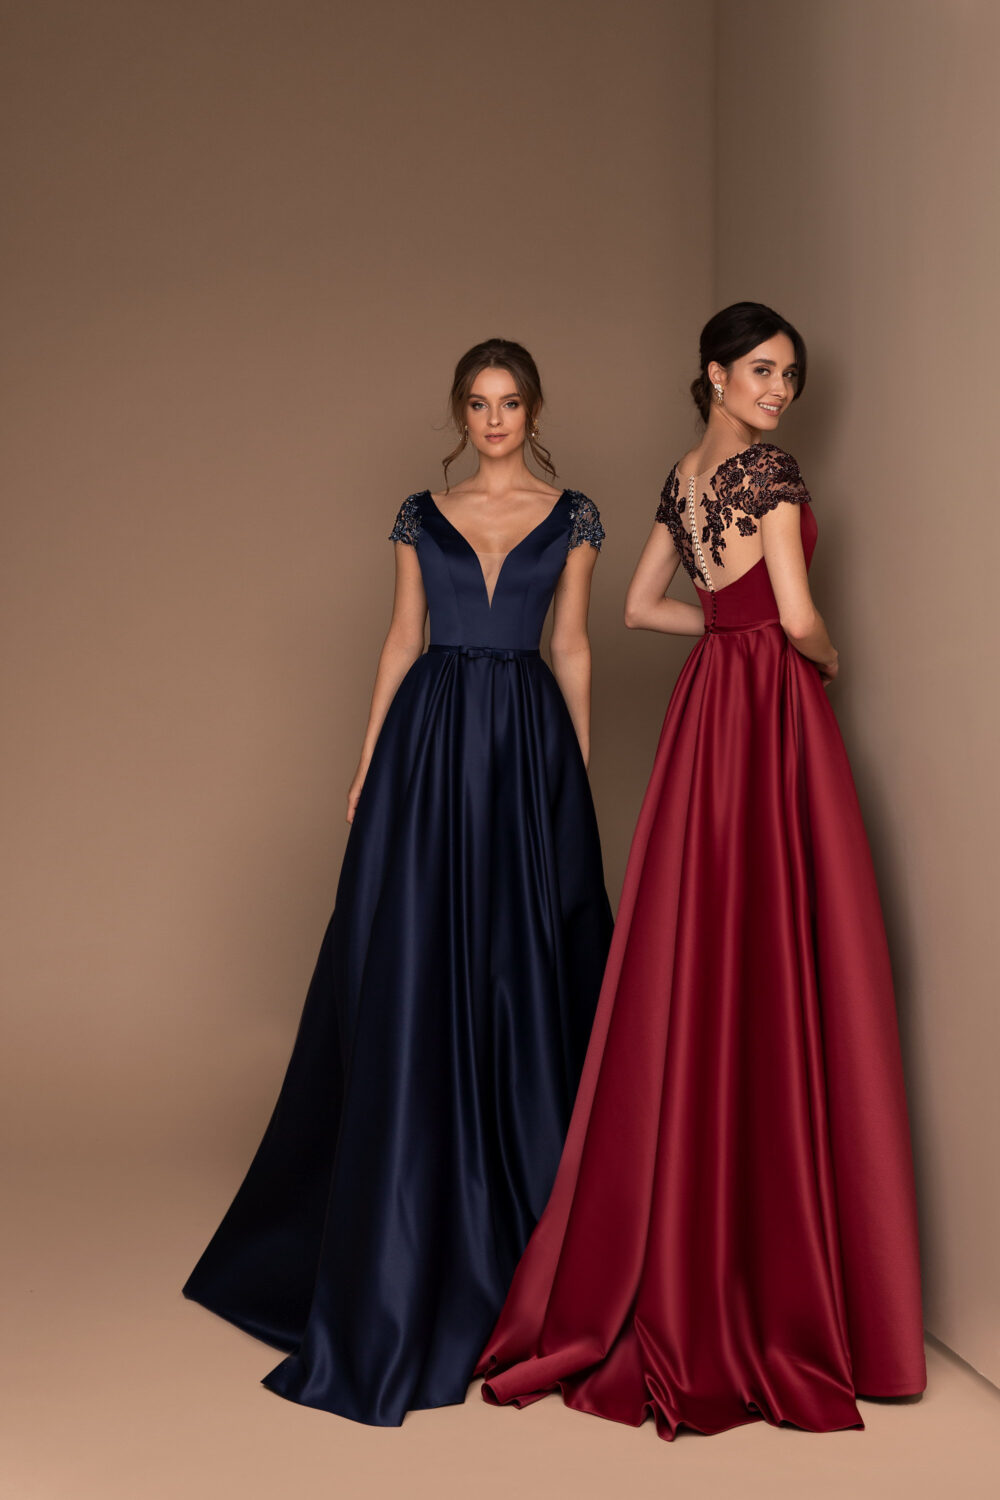 Elegant Evening Dress, Simple Prom Gown, Lace V Neck Bridesmaid Silk A-Line Dresses, Party Wear